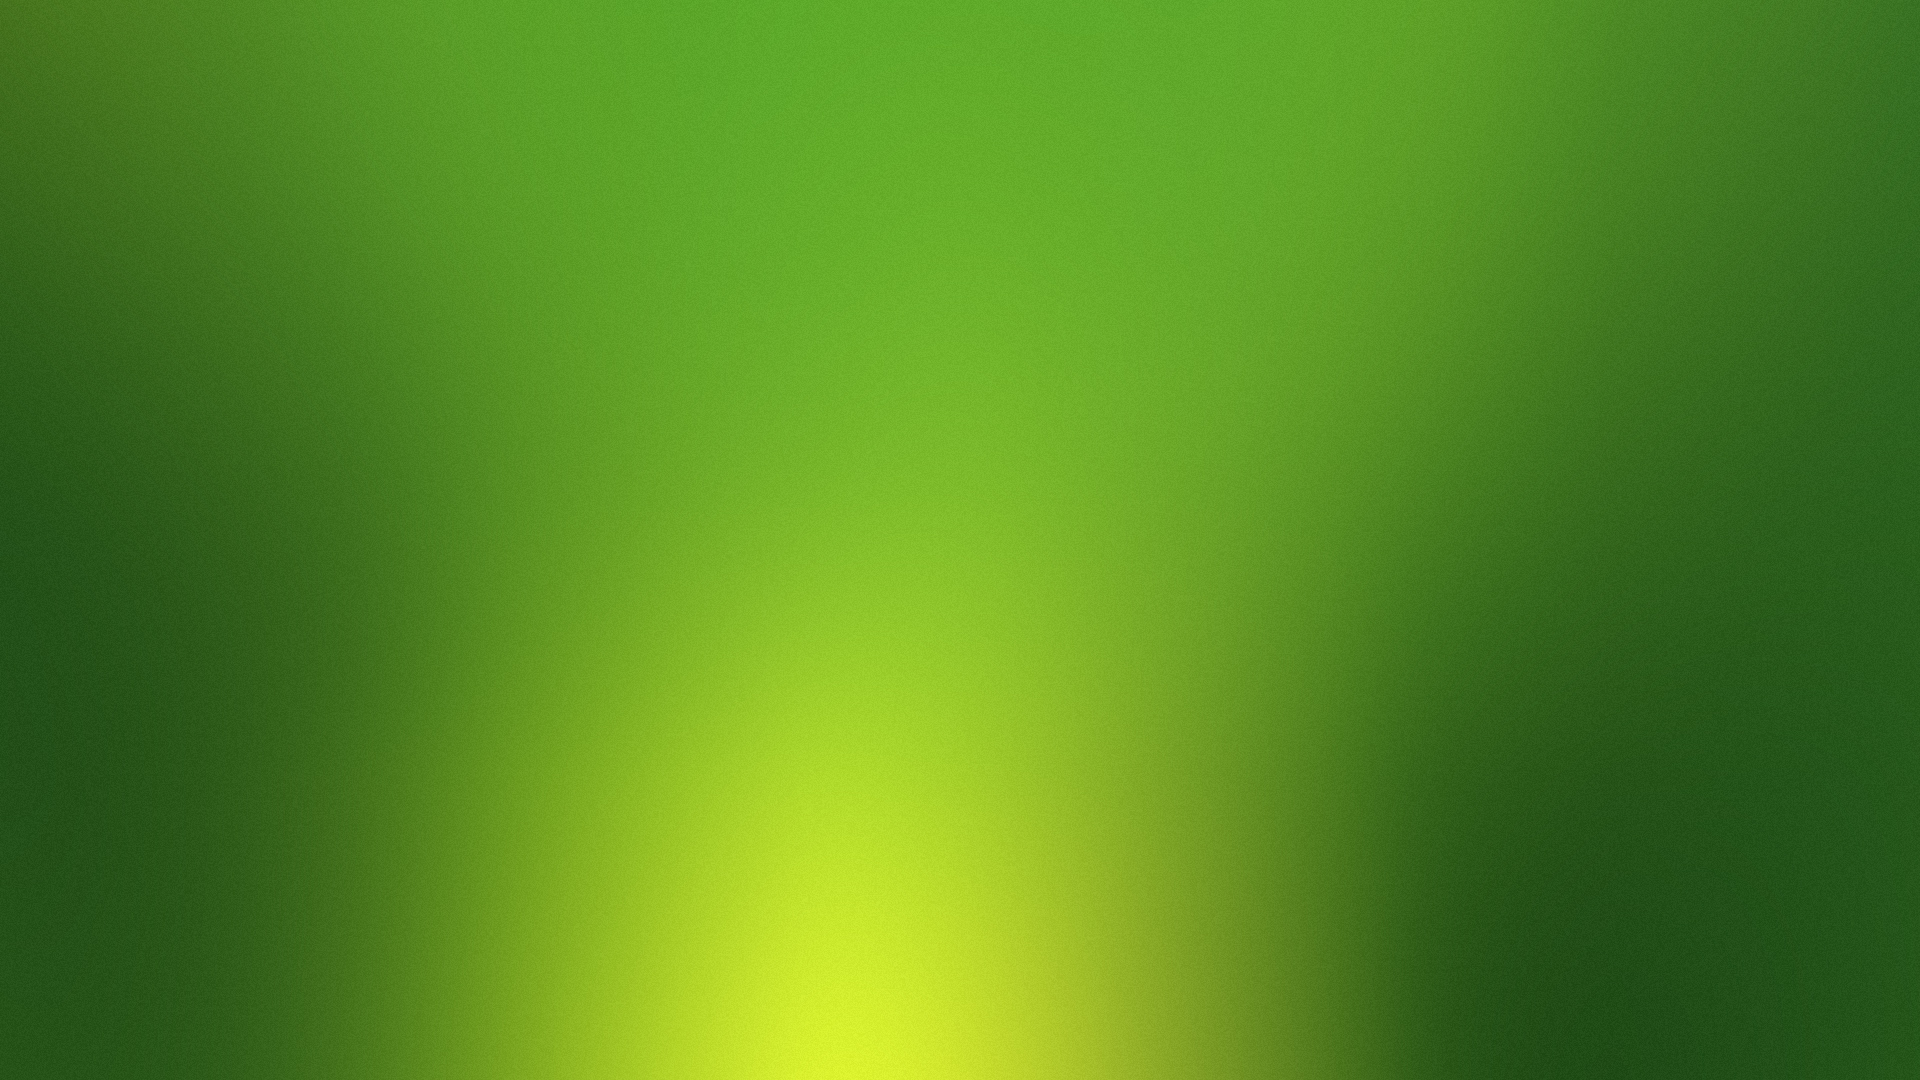 Simple Green Wallpapers HD Wallpapers 1920x1080